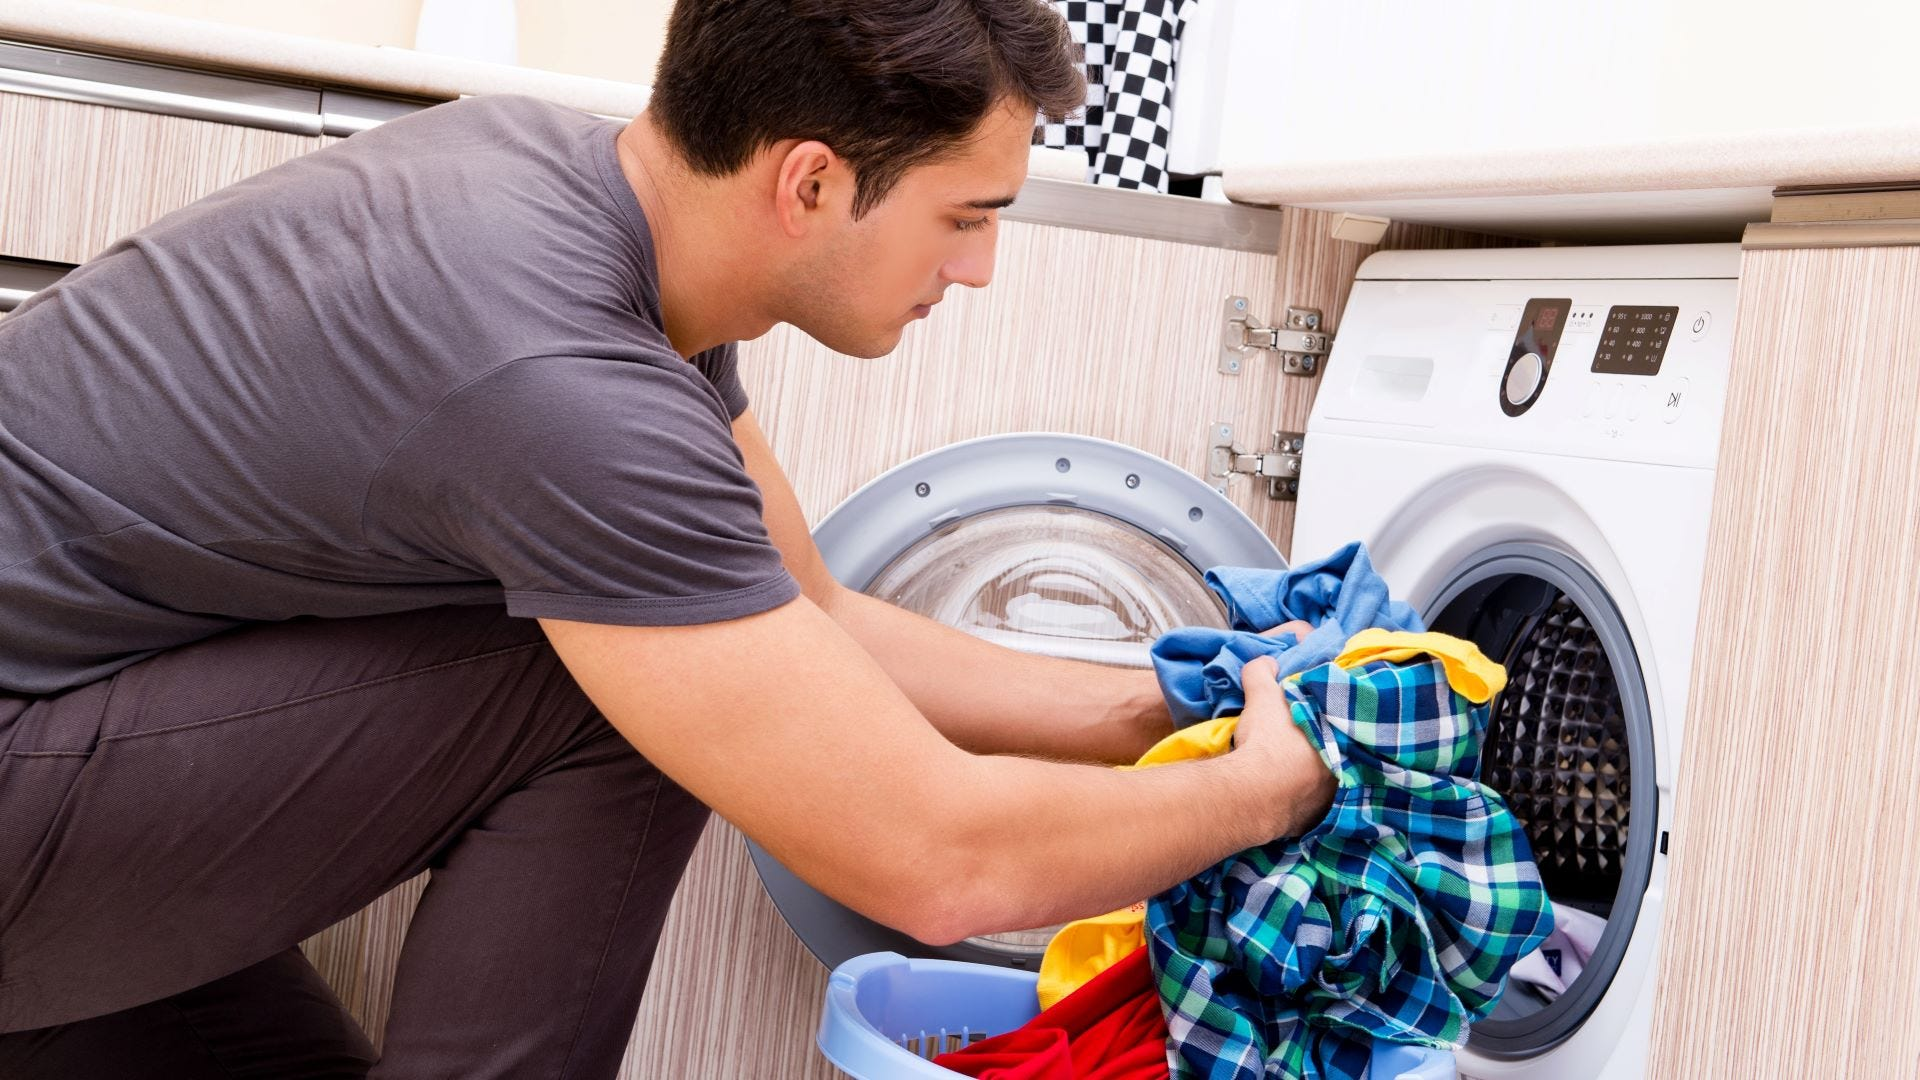 A man putting laundry in the dryer.